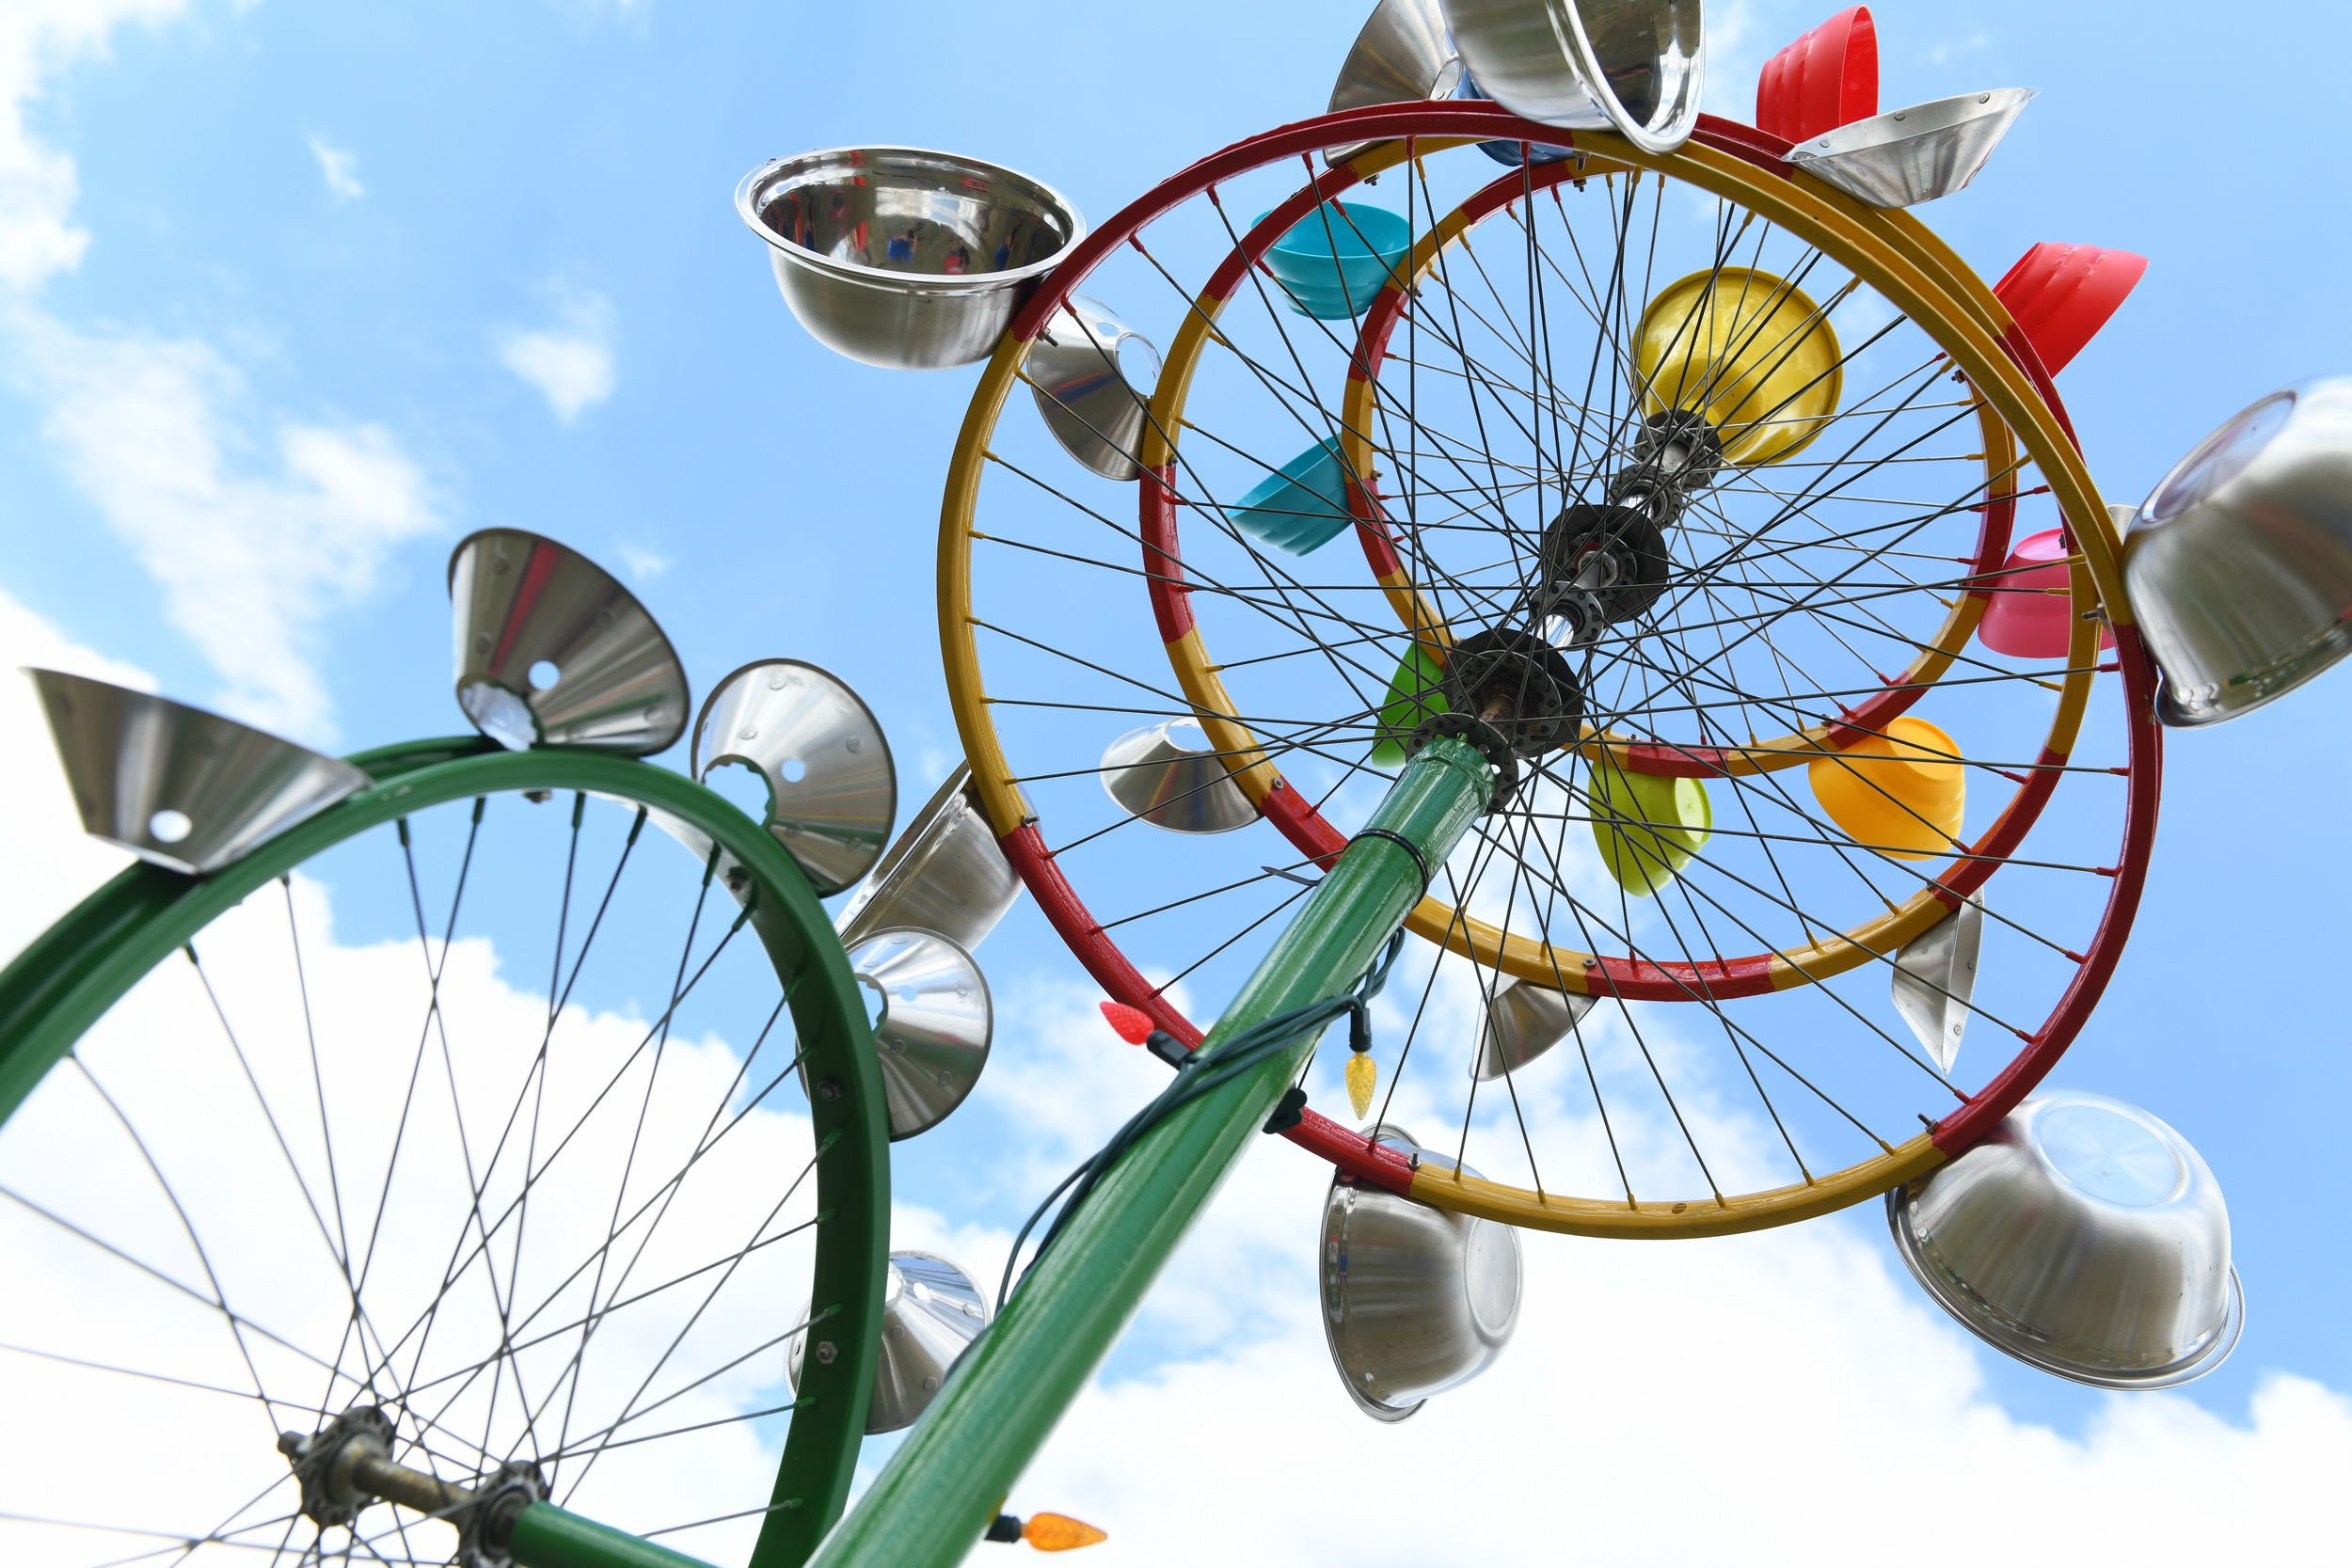 Kinetic Sculpture Submission At The Windscape Kite Festival In